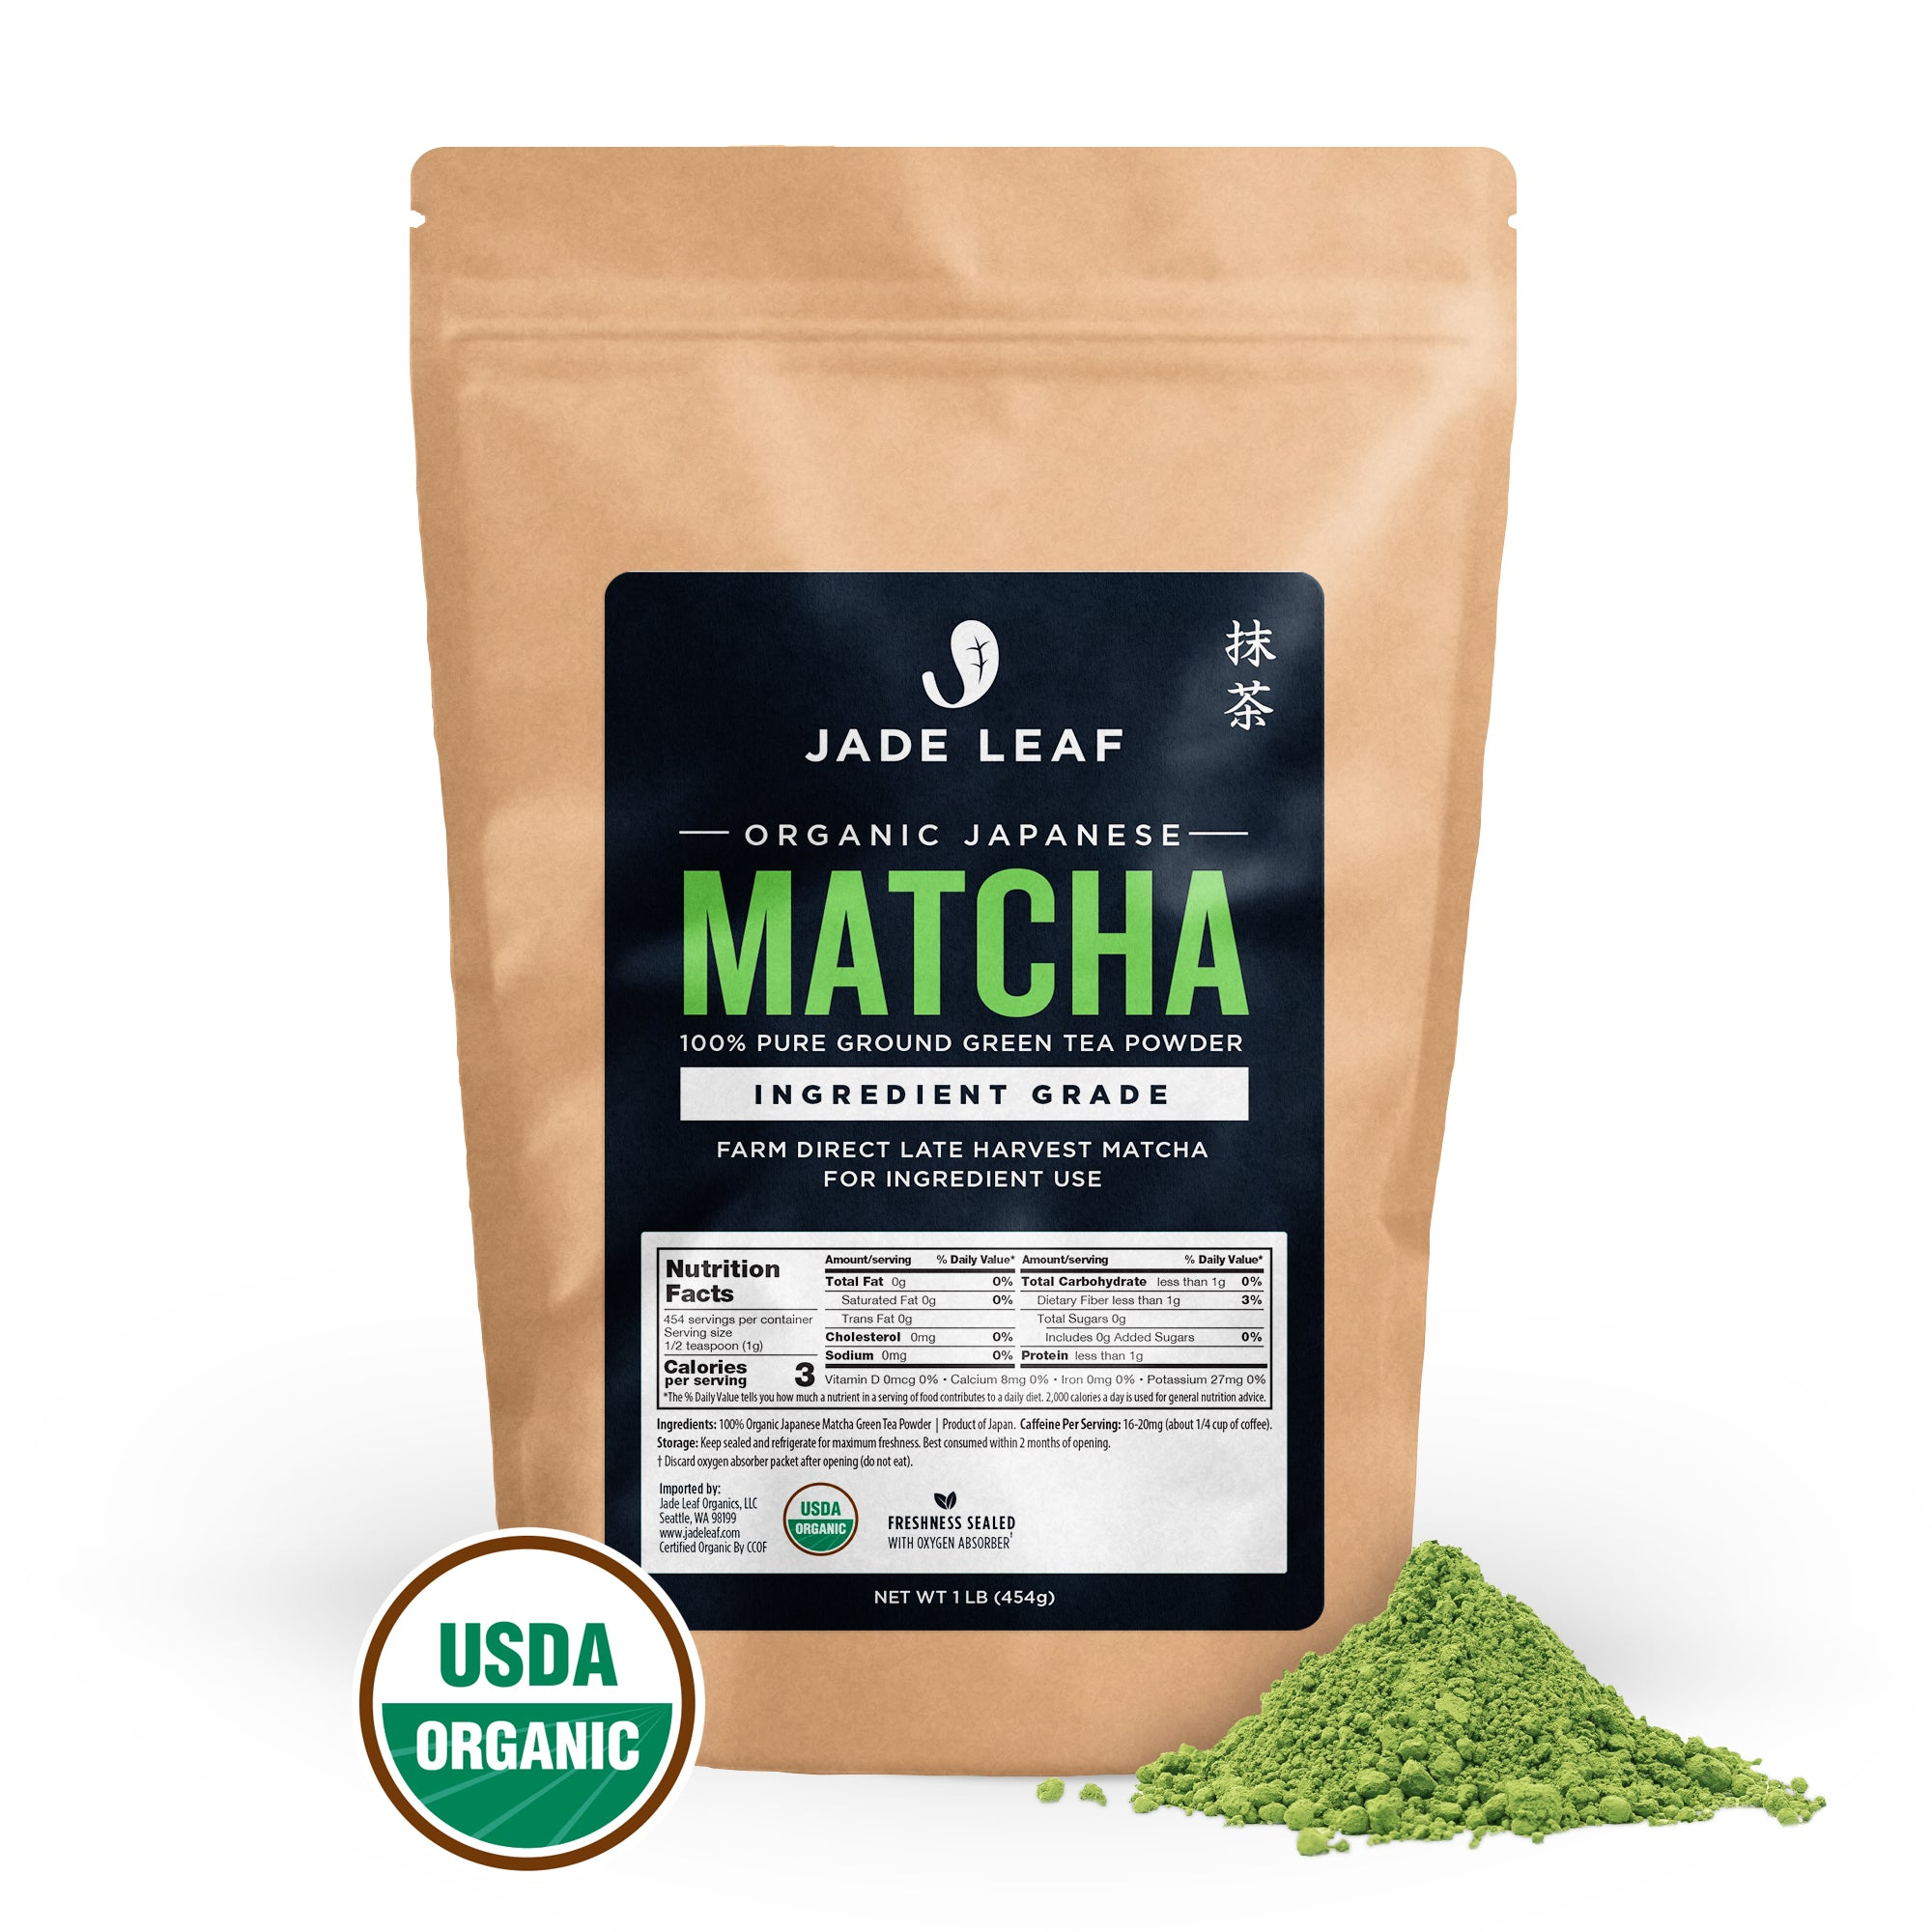 Jade Leaf Organic Ingredient Grade Matcha - Wholesale